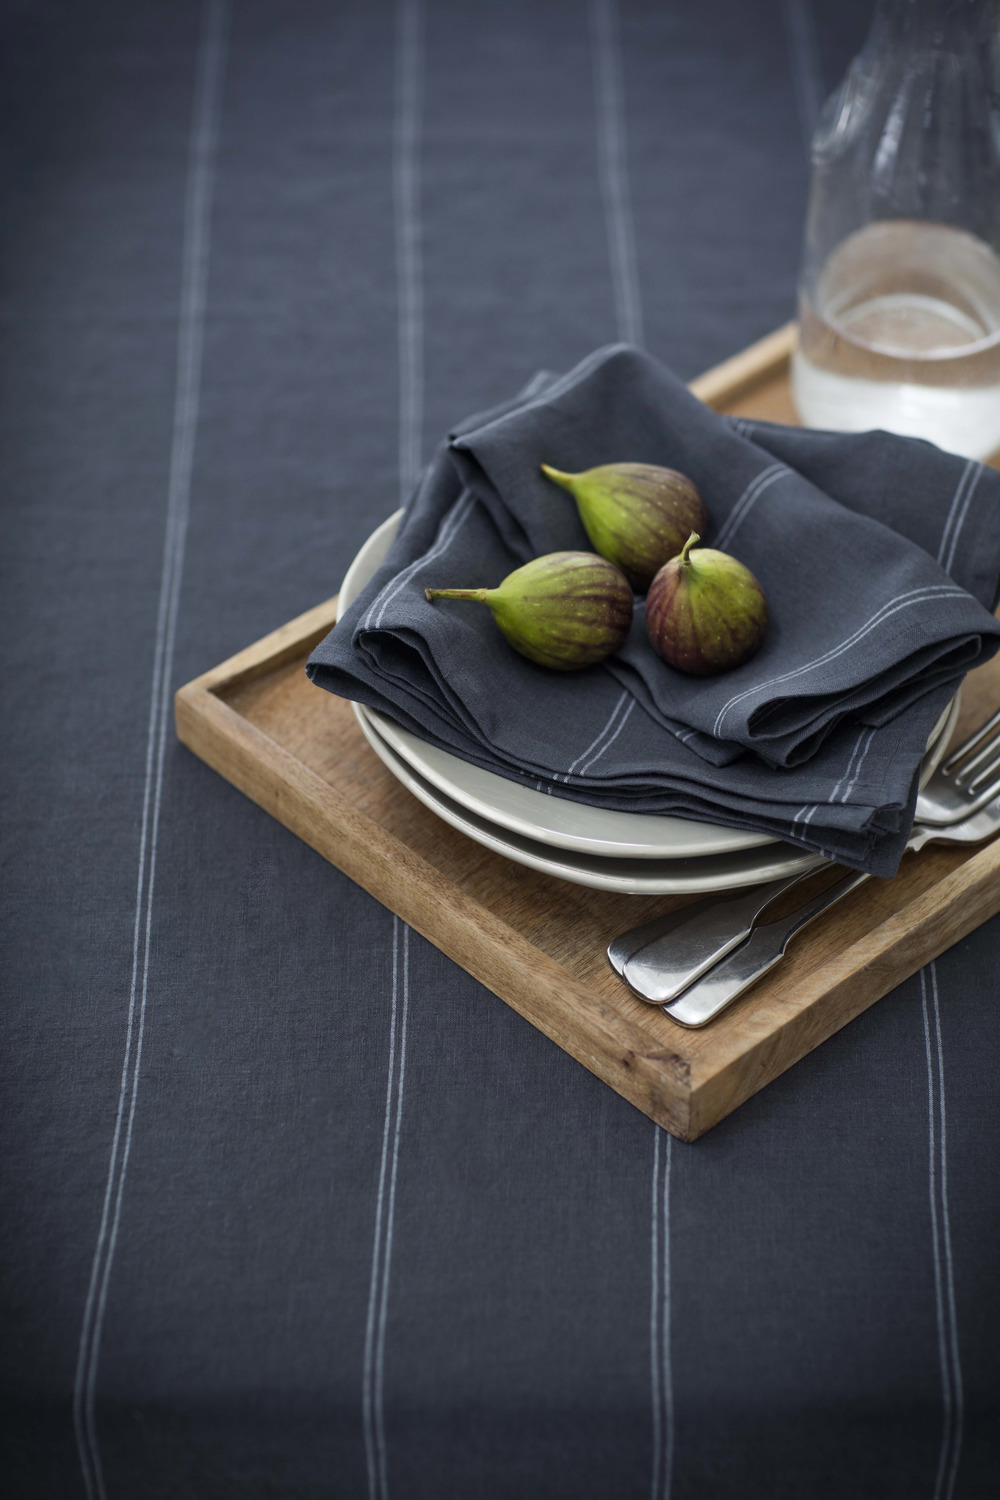 Italian stripe linen tablecloth in steel from £125 | Italian stripe napkins in steel £12 each.